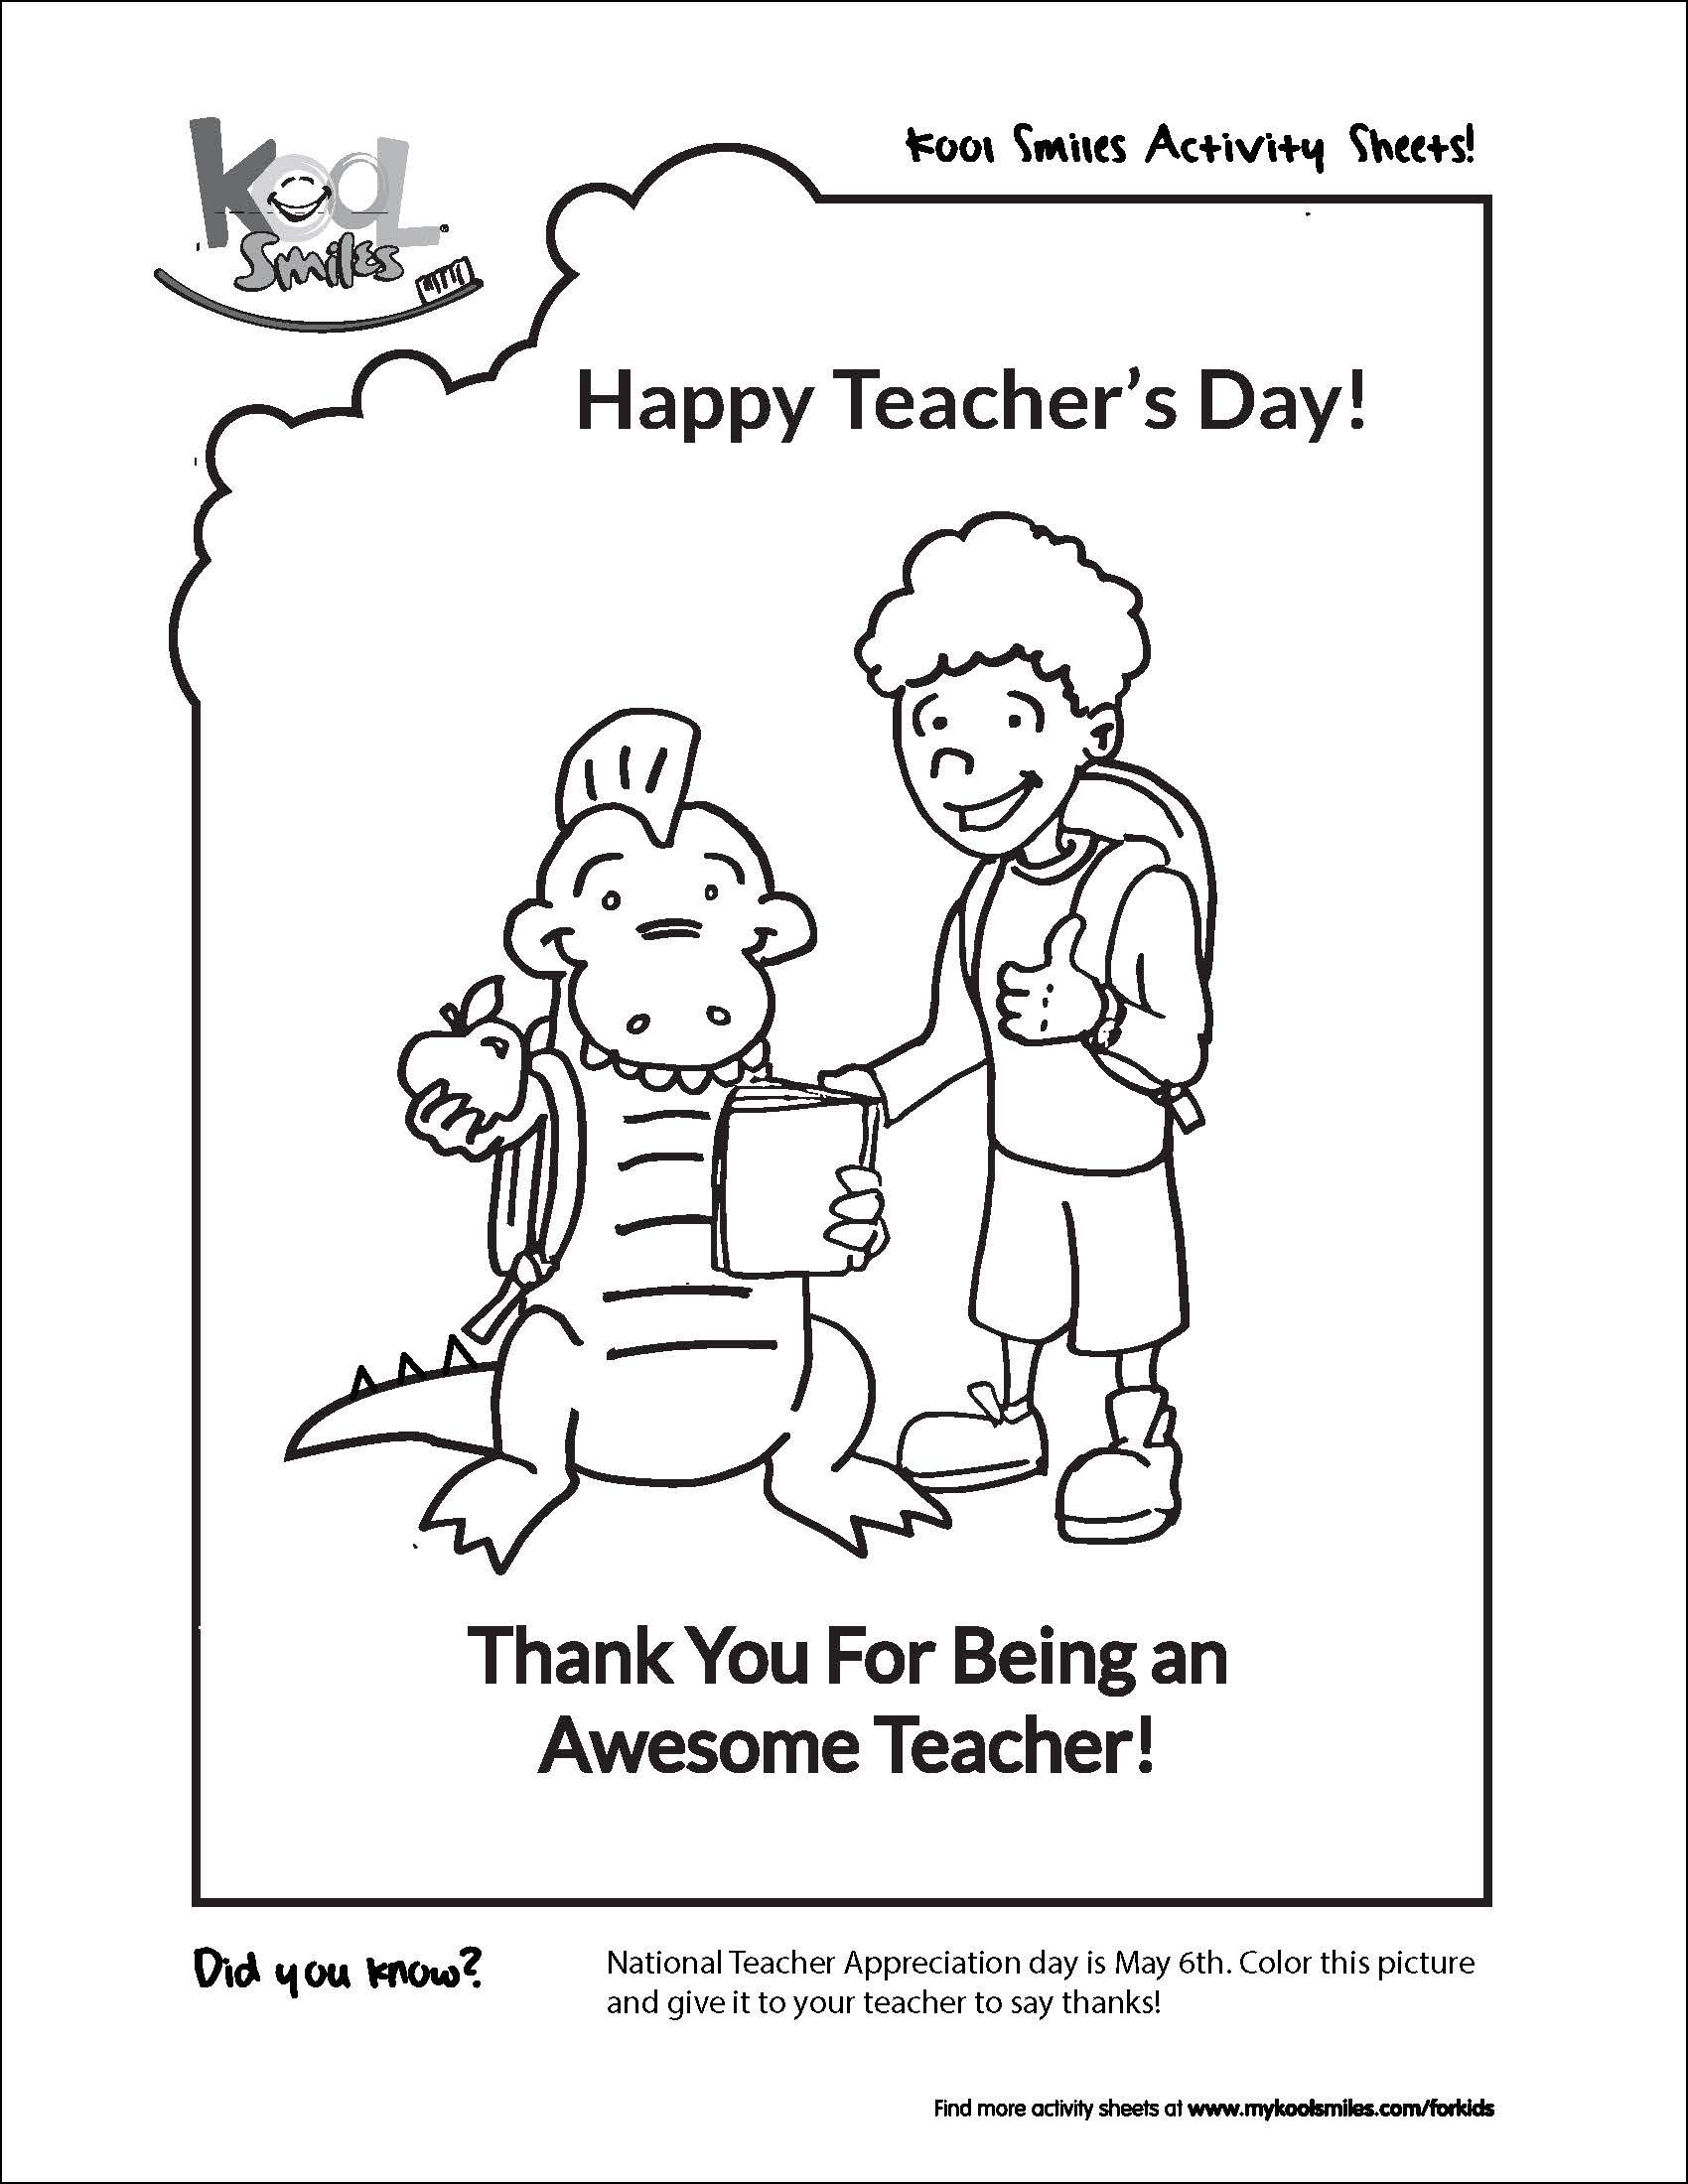 celebrate national teacher u0027s day with this fun activity sheet